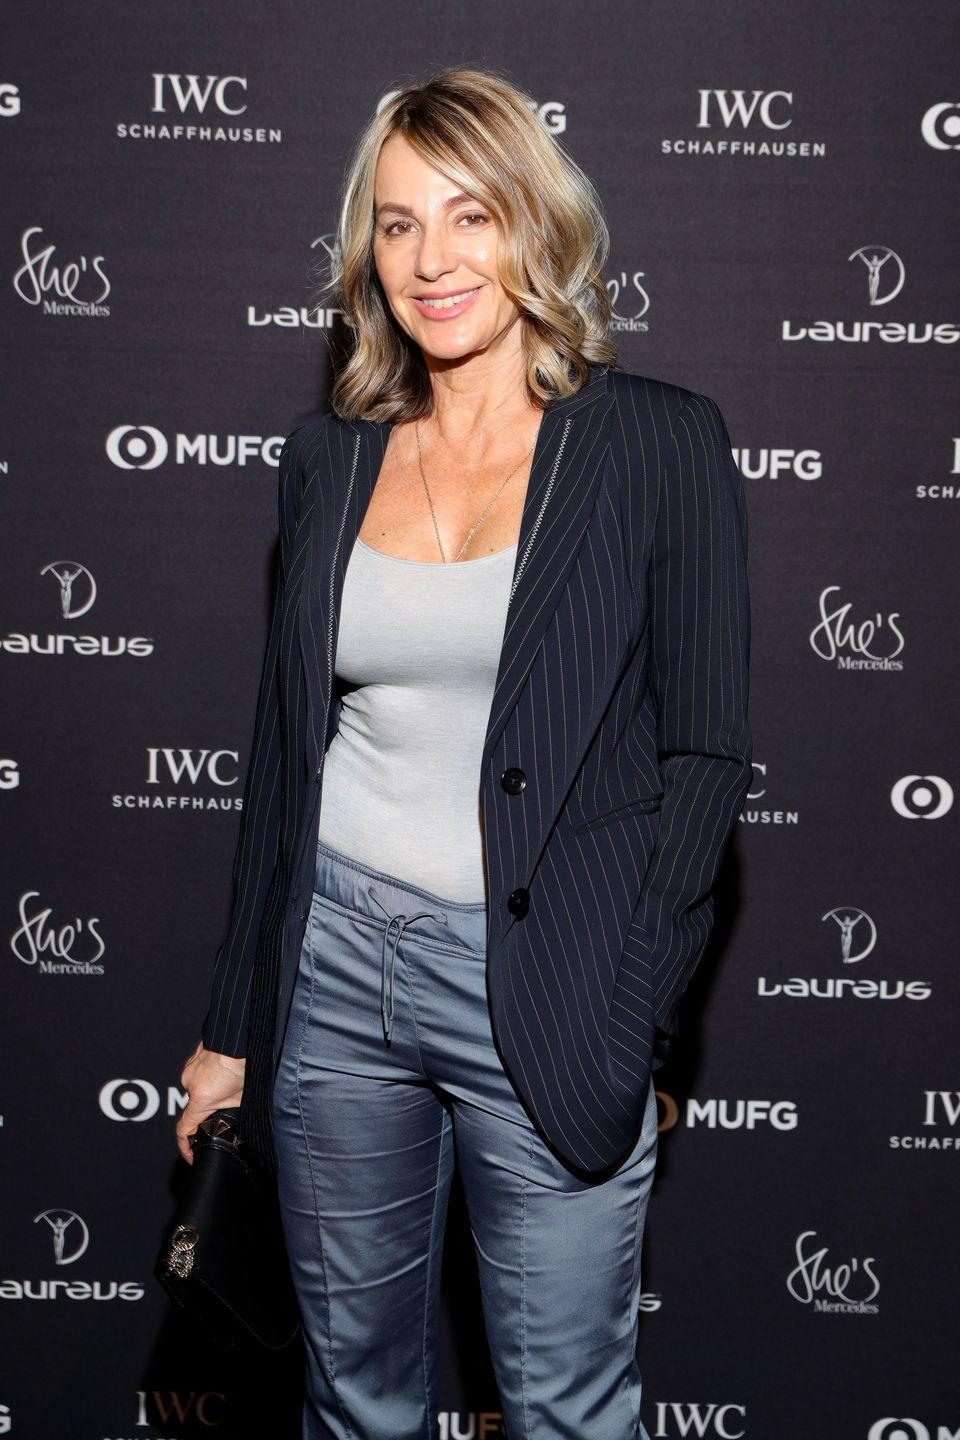 """<p>Throughout her gymnastics career, Comaneci would go on to win a total of <a href=""""https://www.britannica.com/biography/Nadia-Comaneci"""" rel=""""nofollow noopener"""" target=""""_blank"""" data-ylk=""""slk:five gold Olympic medals"""" class=""""link rapid-noclick-resp"""">five gold Olympic medals</a>. She retired from the sport in 1984 and became a United States citizen in 2001. She is married to former American gymnast Bart Connor and has authored several books. </p>"""